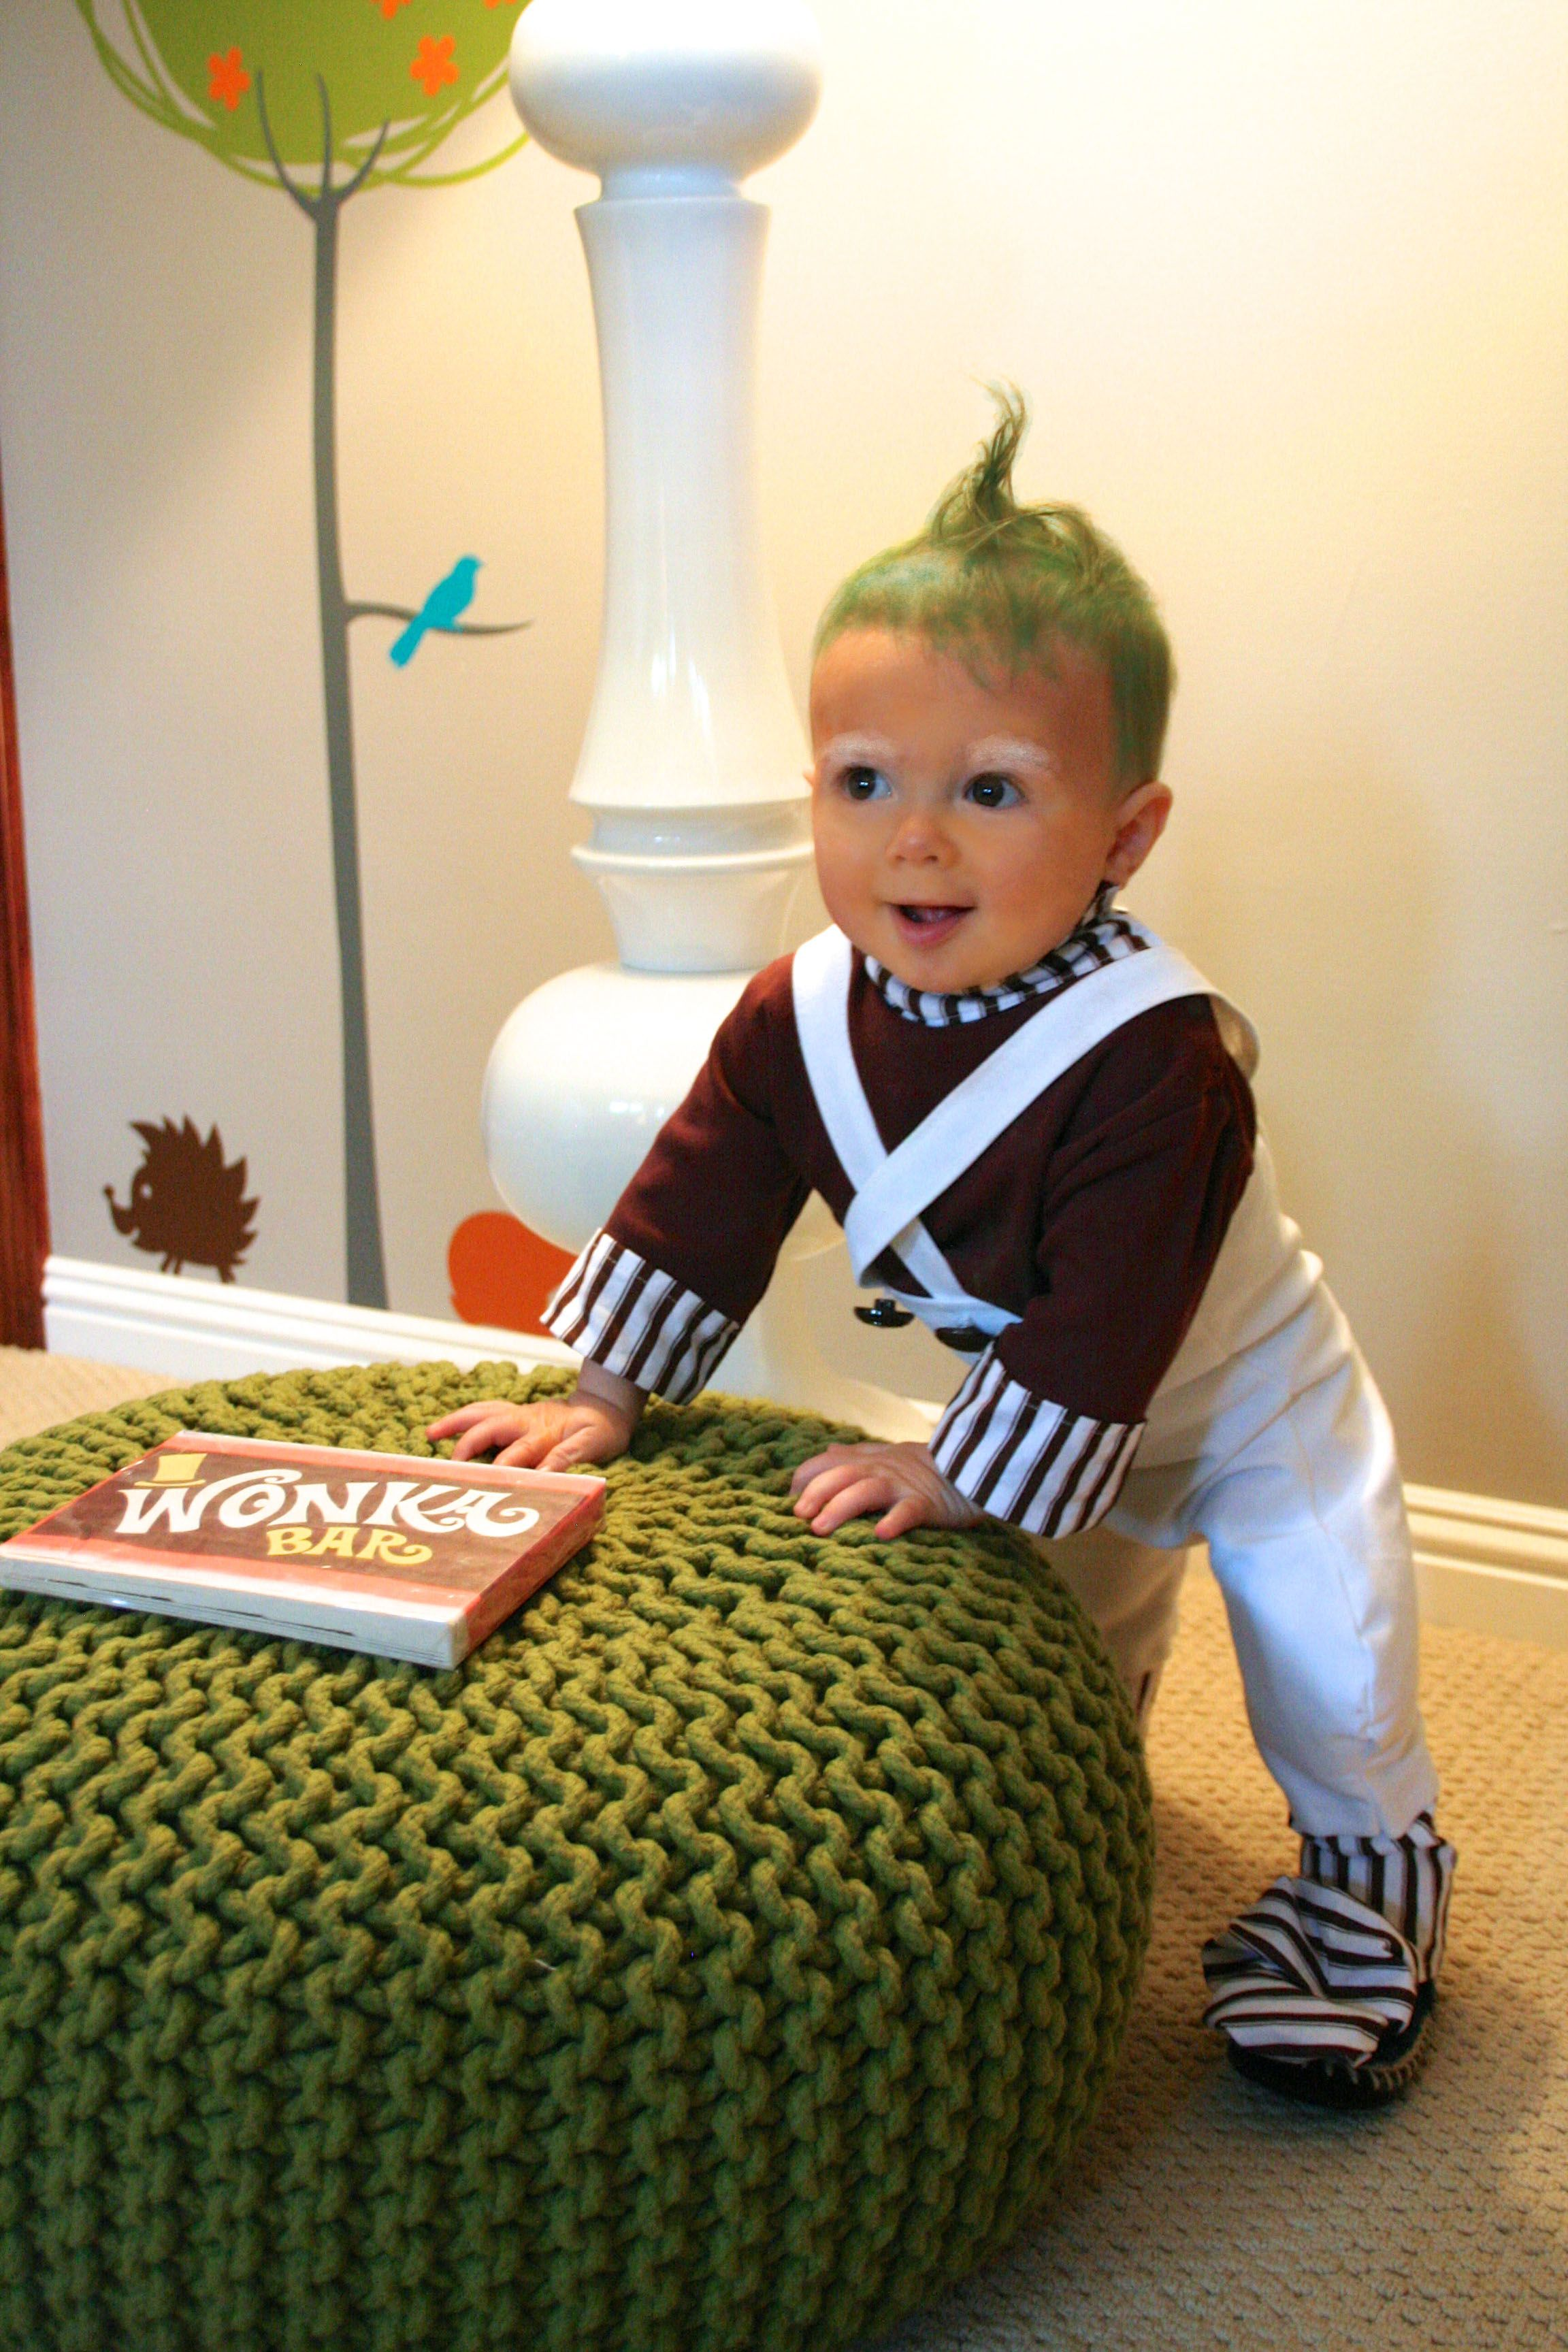 Ridiculous Baby Halloween Costumes: Epic Fail or Parenting Win ...